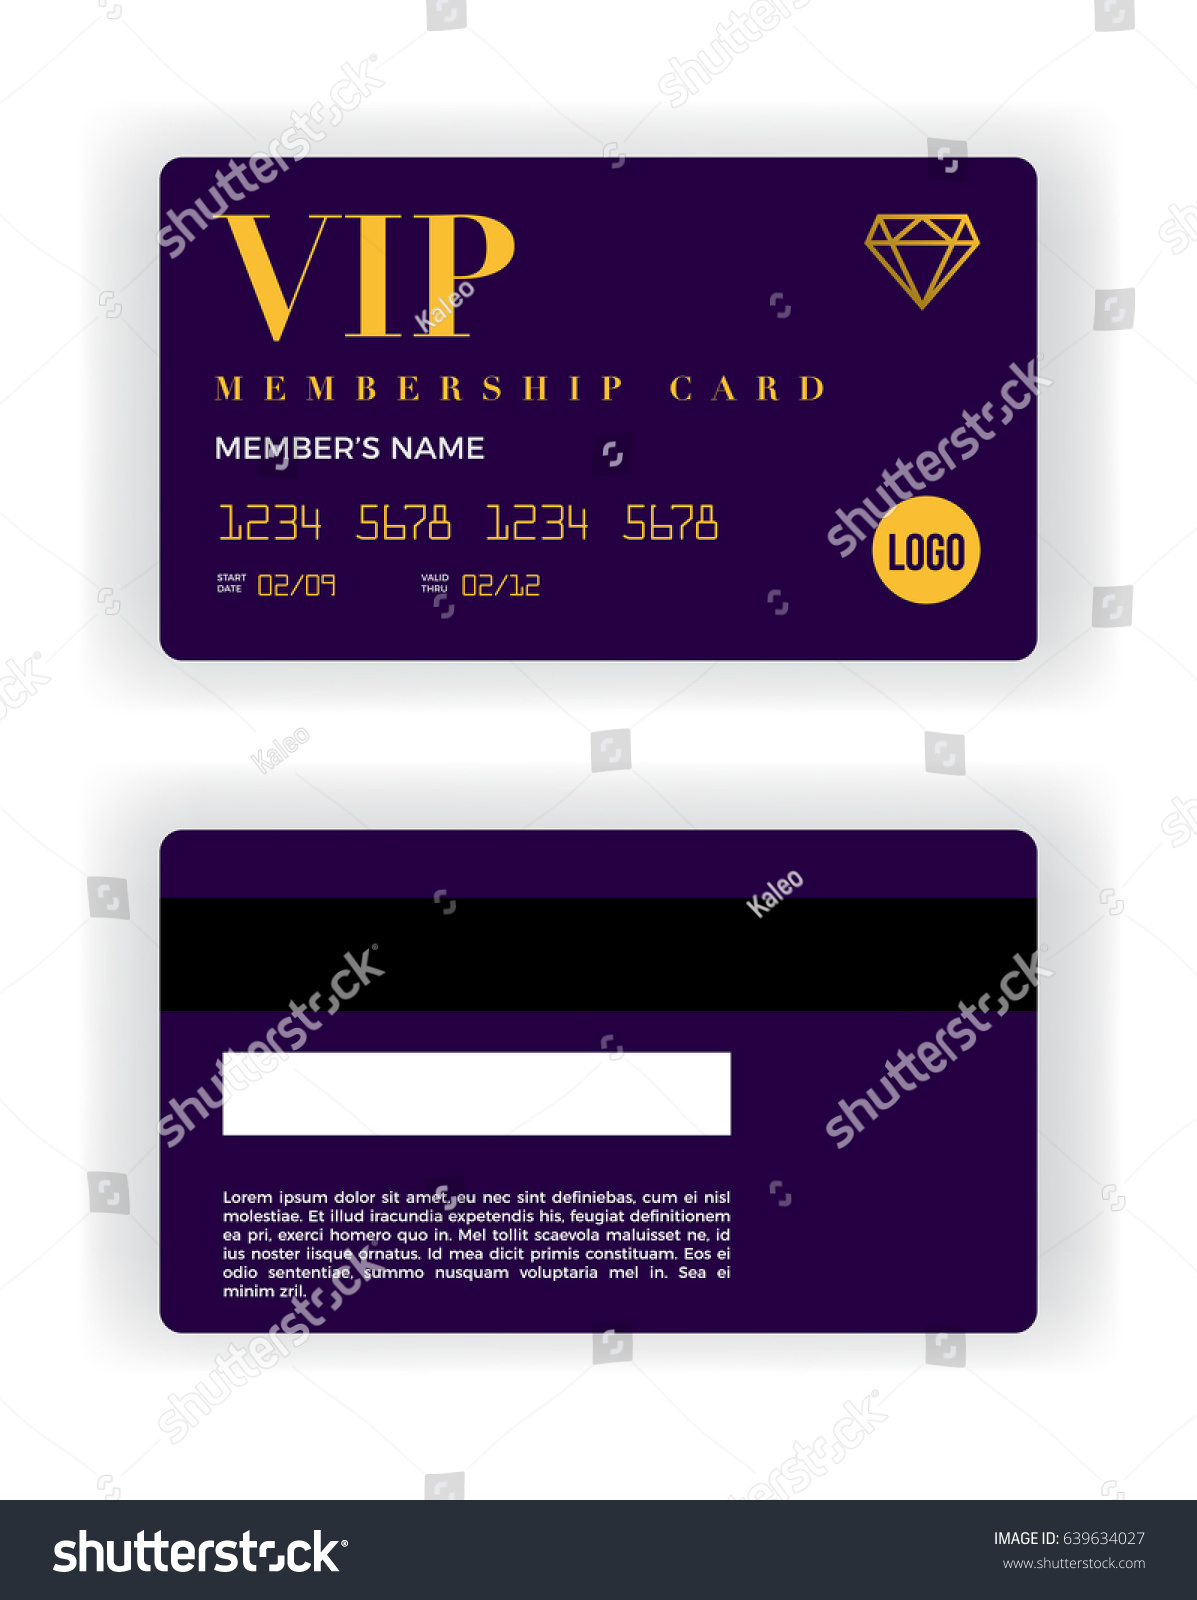 pta membership card template - comfortable membership id card template photos example